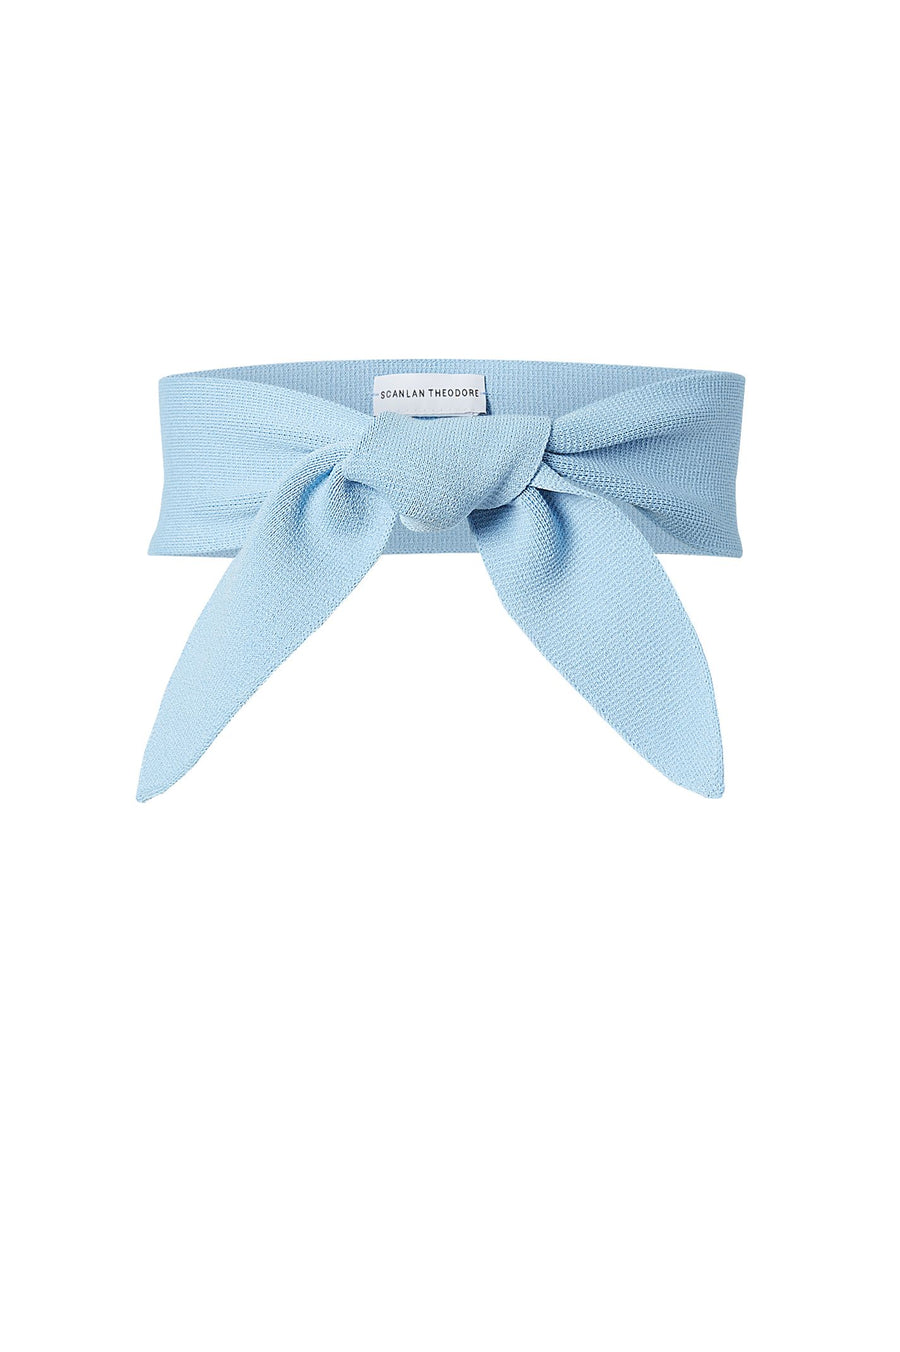 CREPE KNIT BELT PALE BLUE, Tapered, Tie front